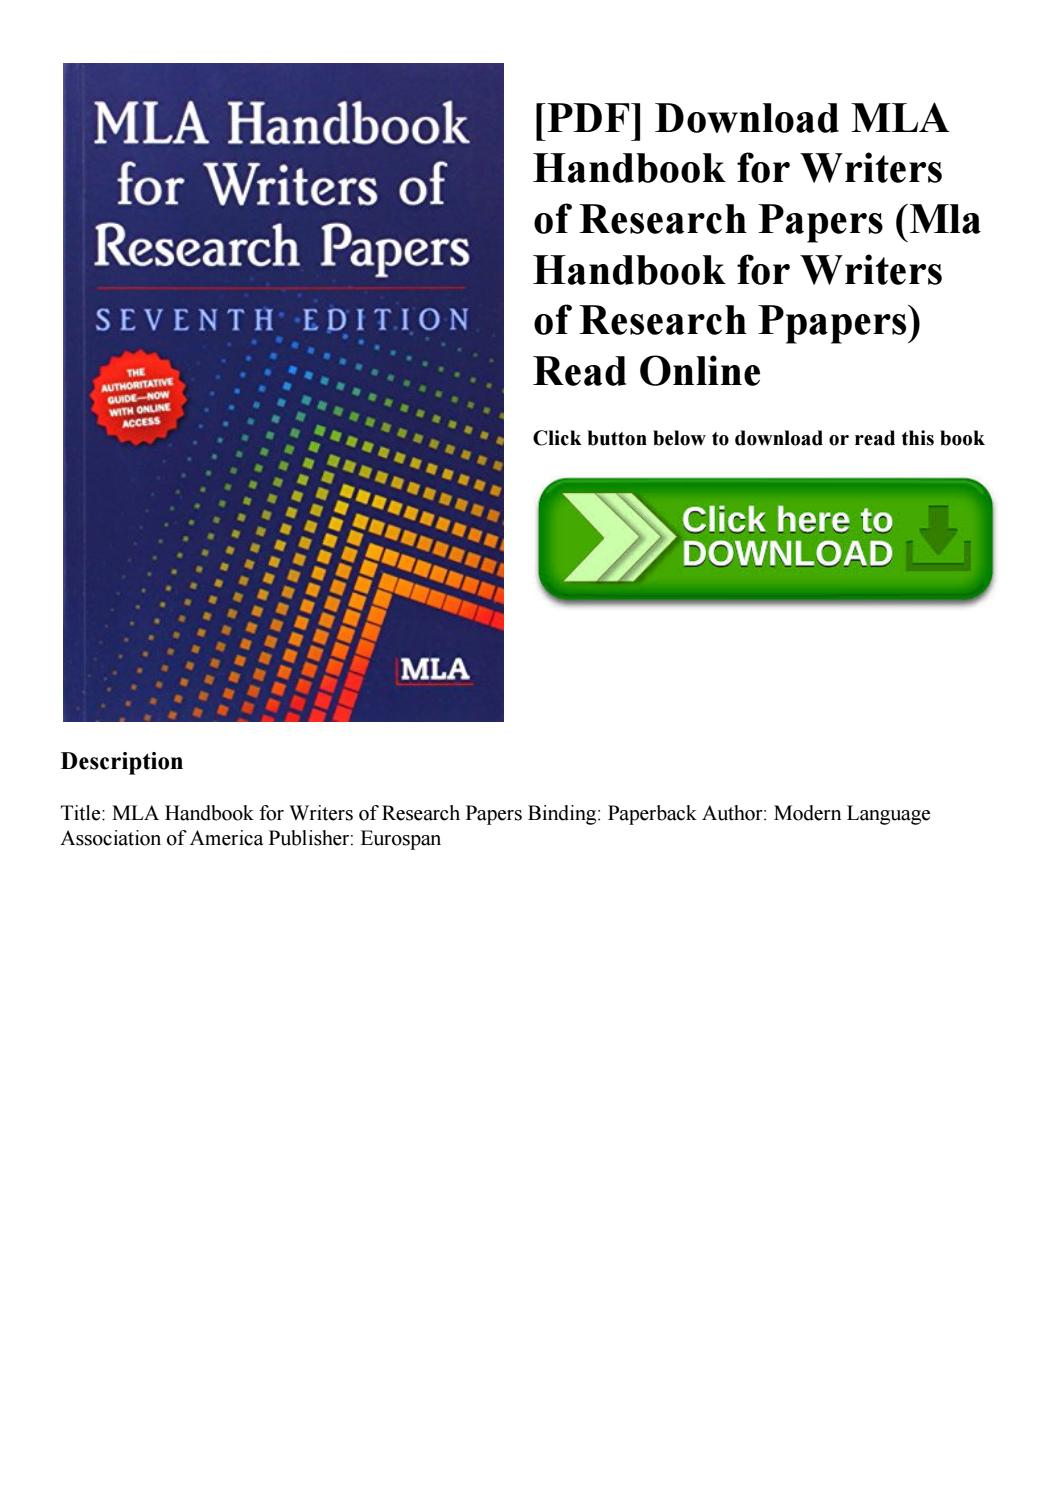 001 Mla Handbook For Writing Research Papers Pdf Paper Page 1 Beautiful Writers Of 7th Edition Free 6th 2009 Full